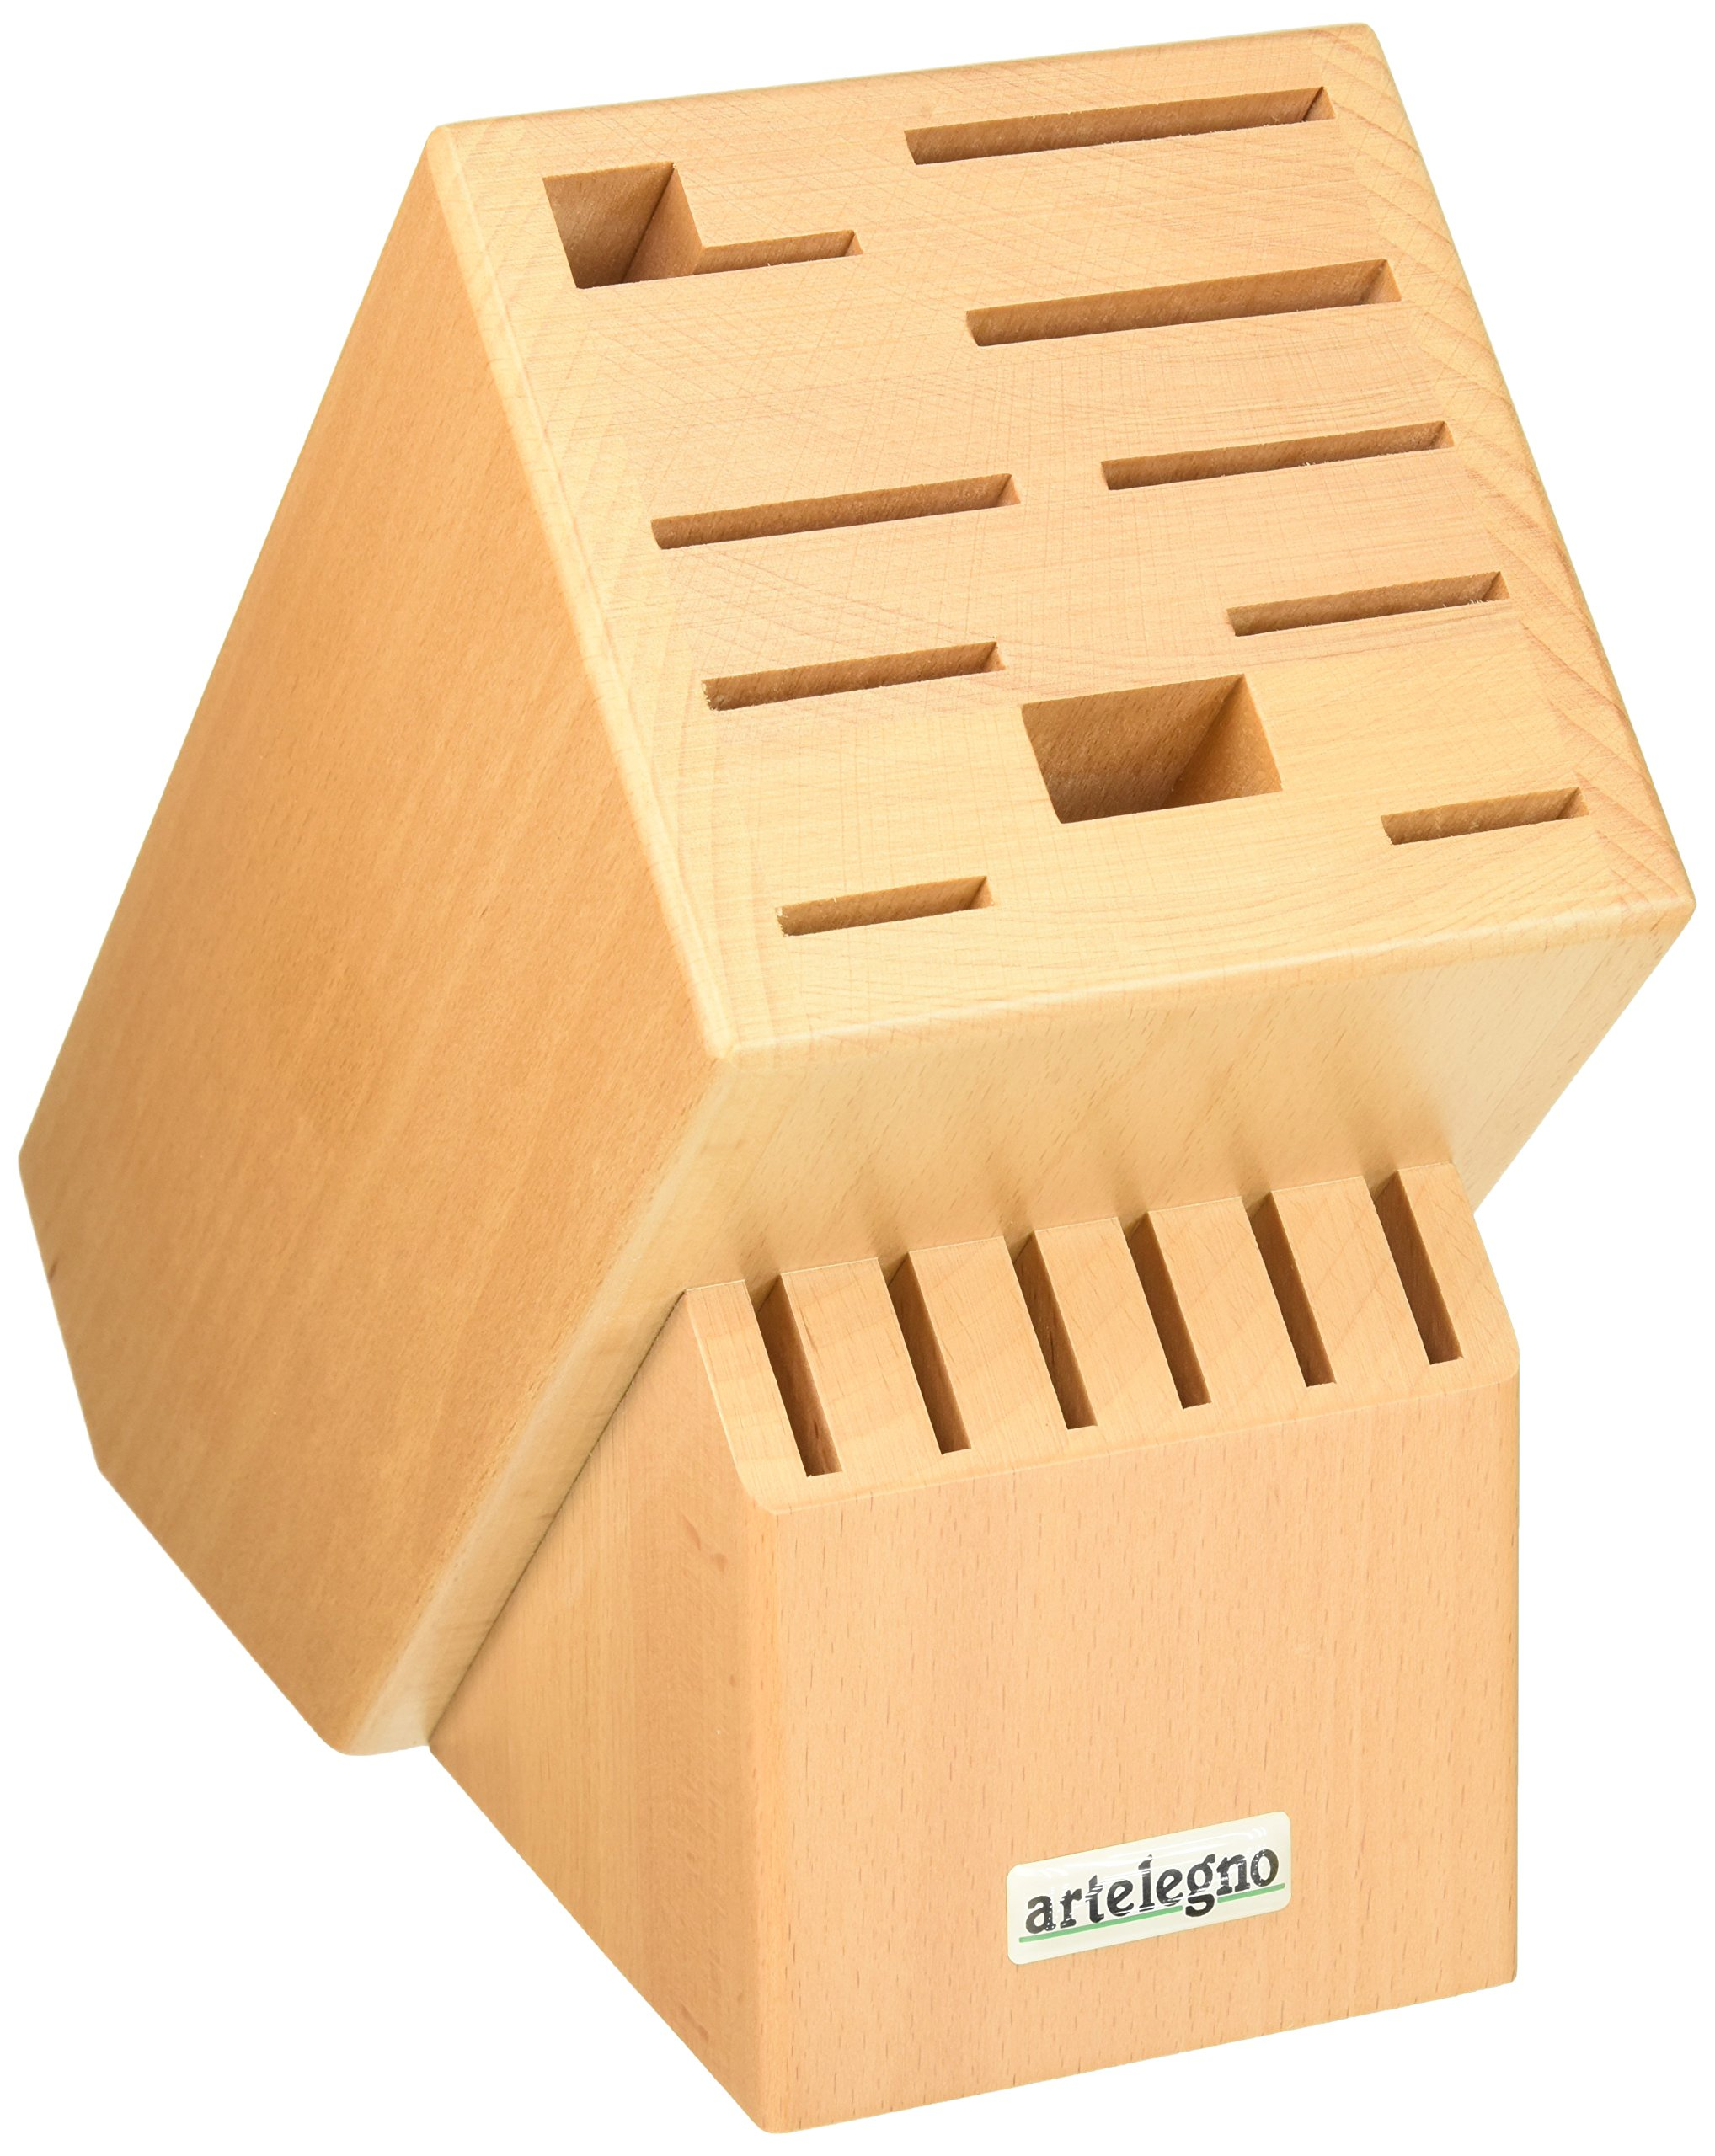 """Artelegno Knife Block Solid Beech Wood 16 Slot Classic, Luxurious Italian Collection by Master Craftsmen Displays High-End Knives Elegantly, Eco-friendly for Blades up to 10.2"""" - Natural Finish"""